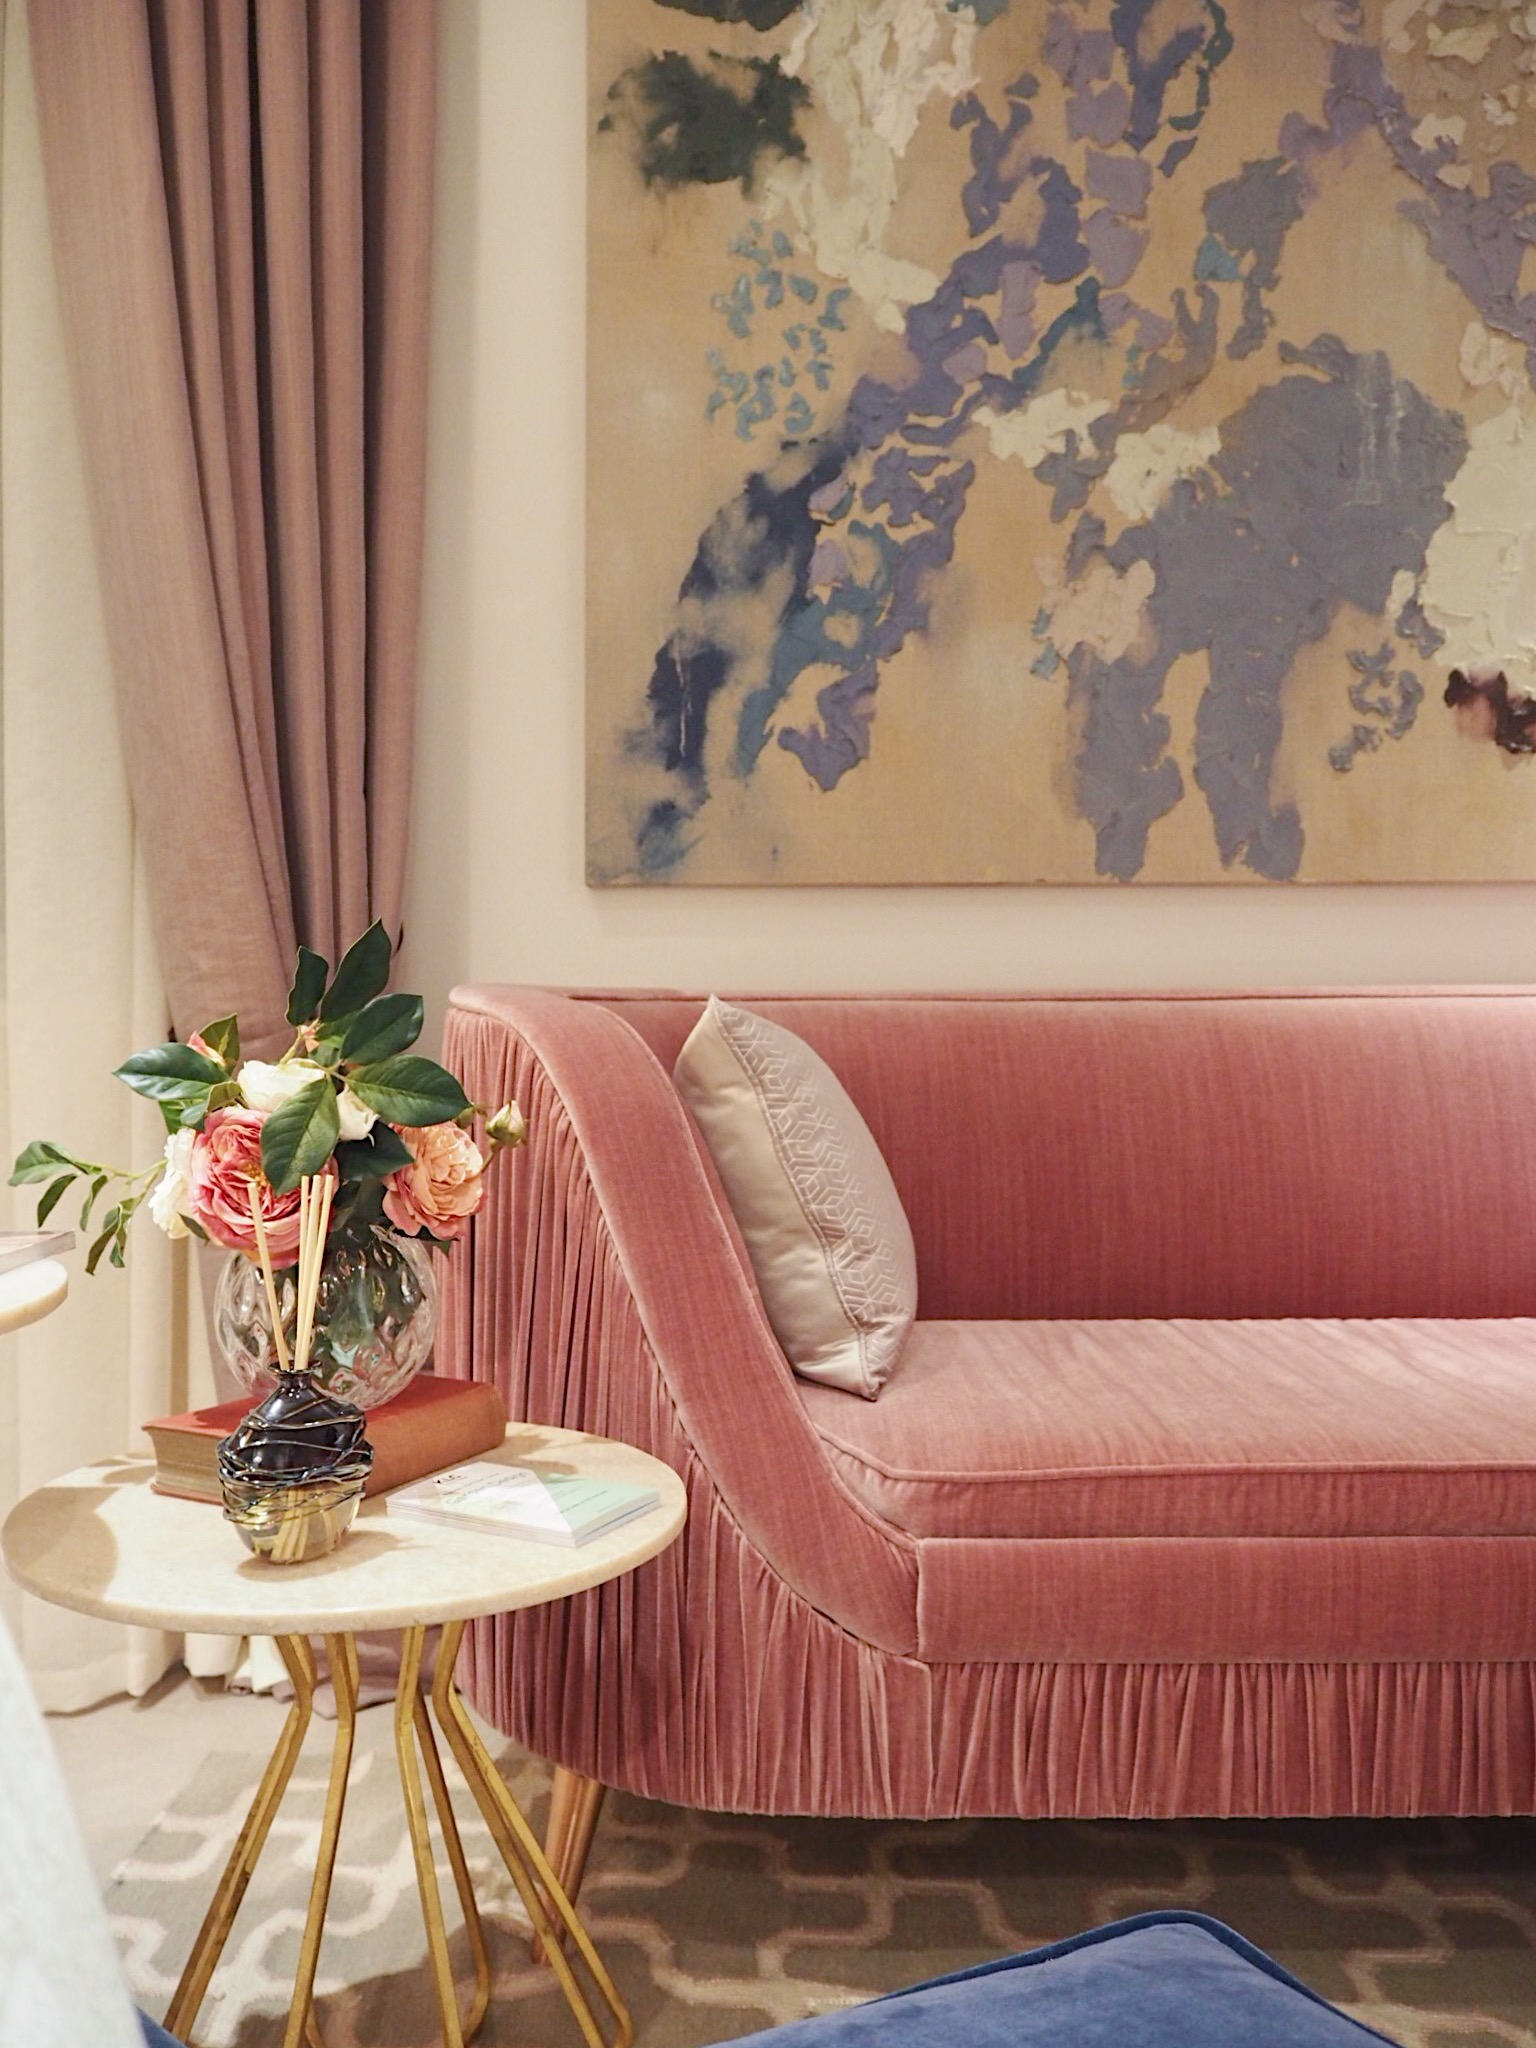 This room was designed by KLC Design School. This amazing sofa is by La Caze and the side table is by Graham & Green.